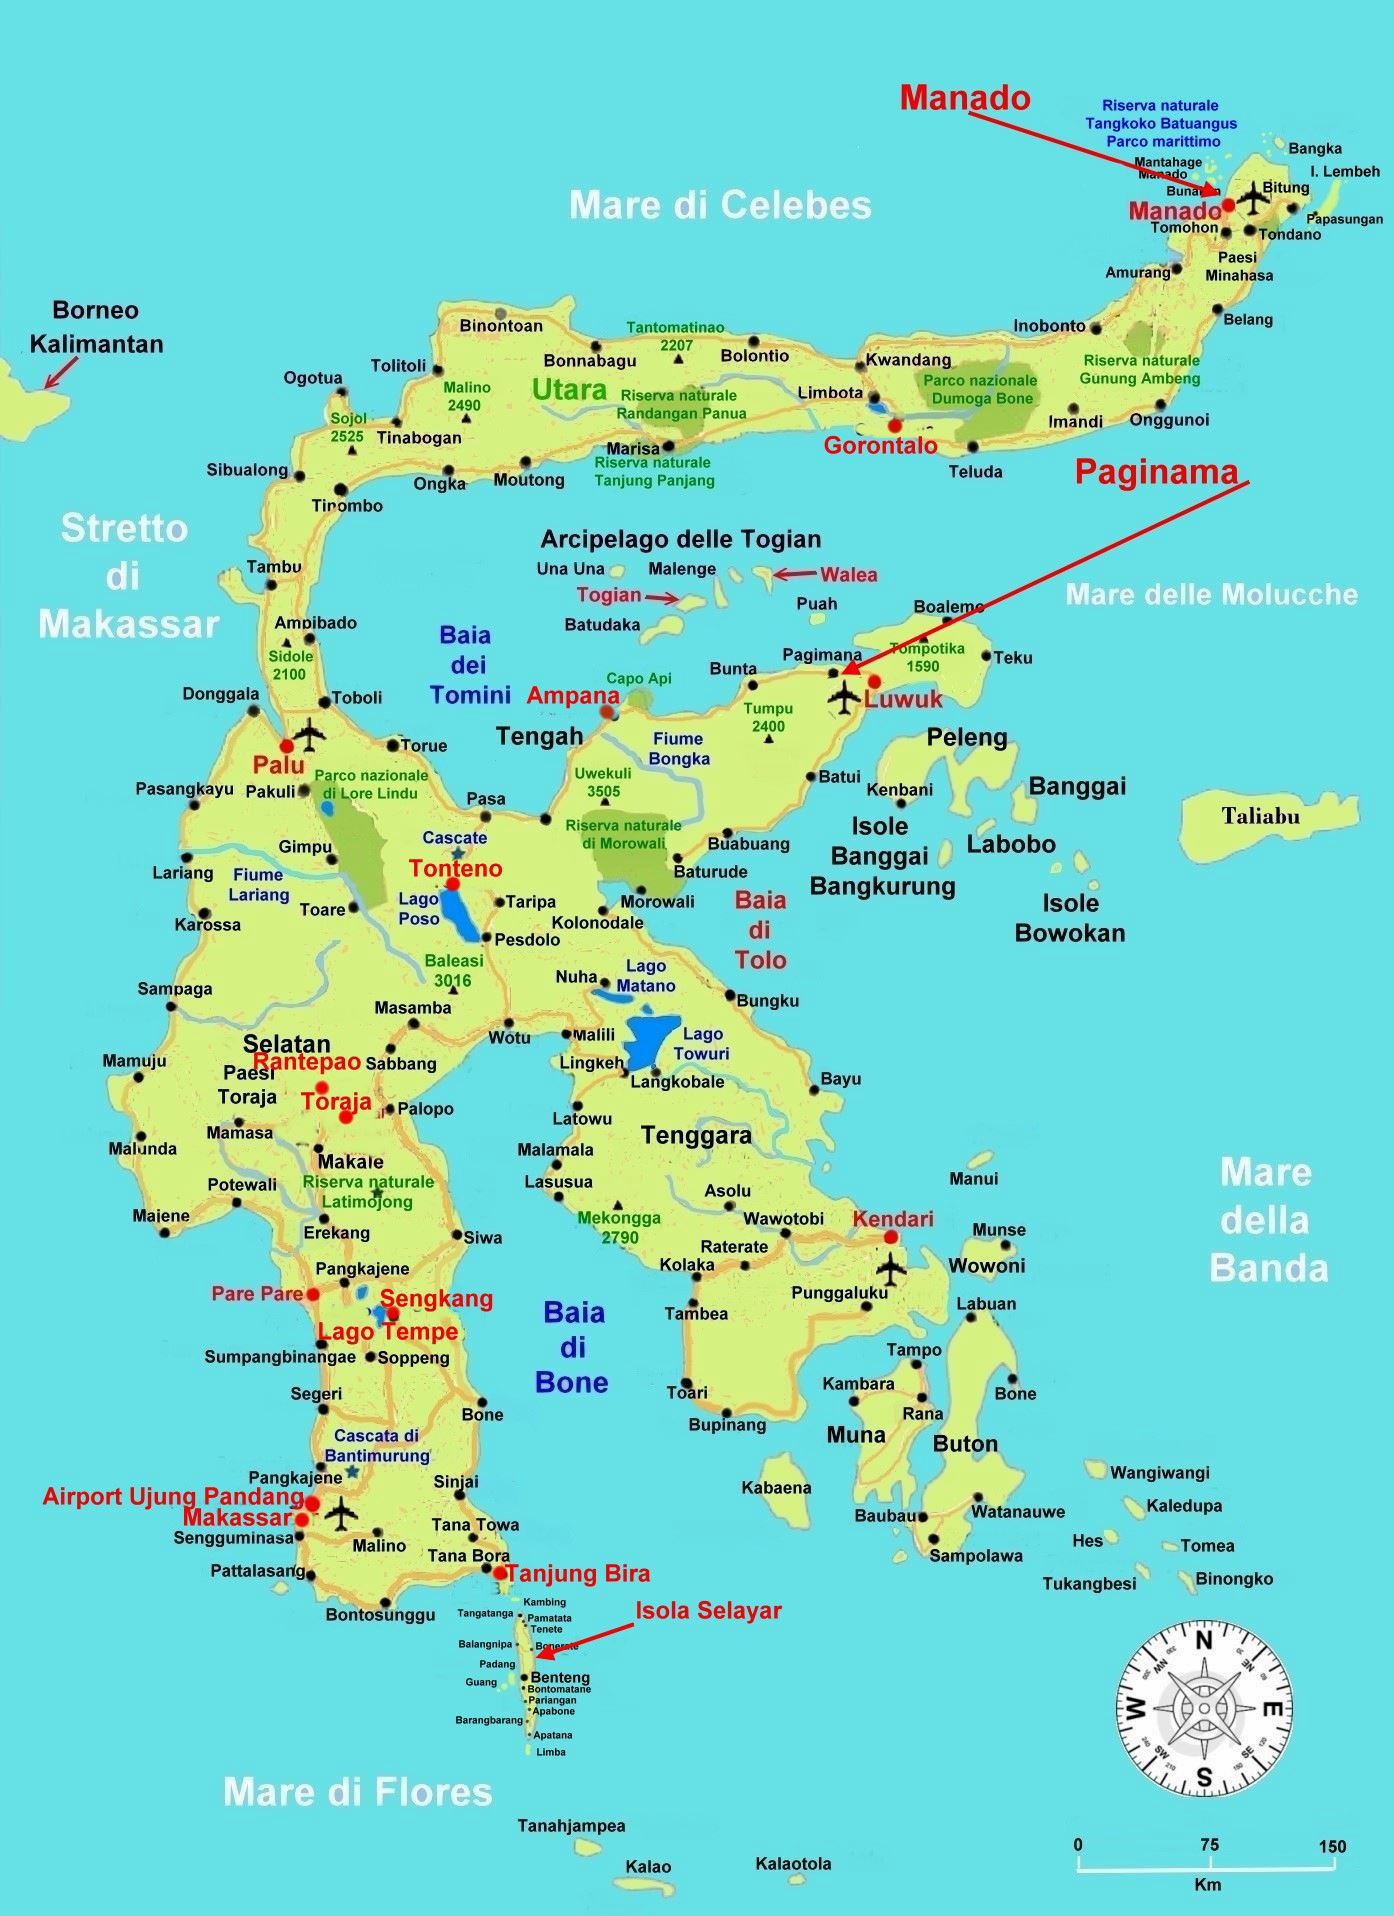 Carte Bali Palu.Large Sulawesi Island Maps For Free Download And Print High